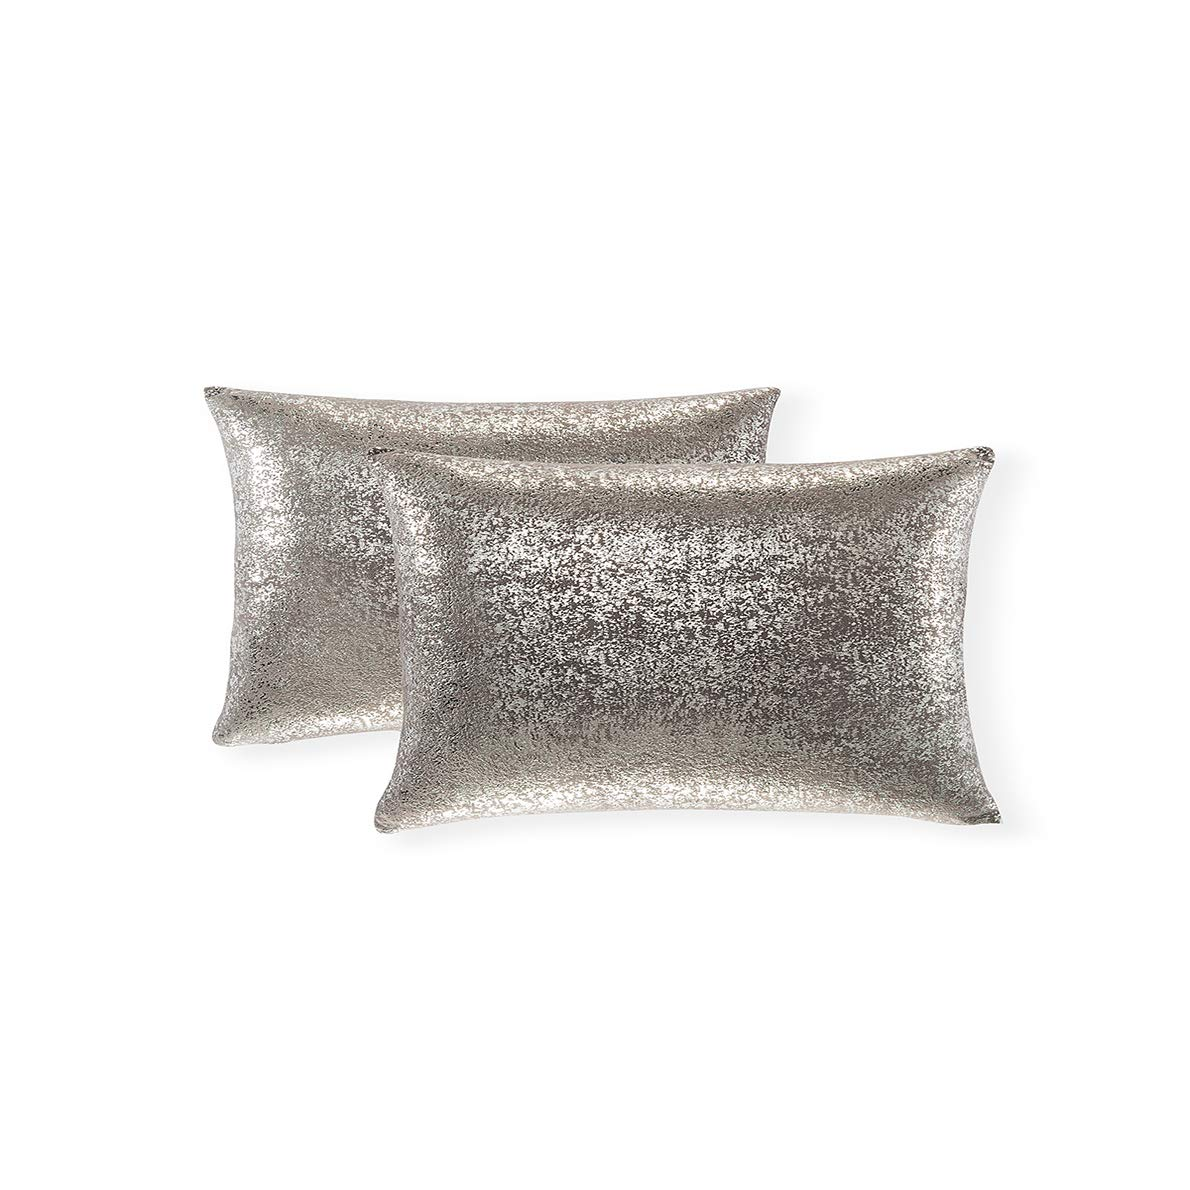 Xinrjojo Sparkling Decorative Pillow Cases, Silver Grey Pillows, 12x20 inch Pillow Covers, for Home Sofa Couch Chair Back Seat Bedroom Car, Starry 2 Pack (Silver- Dark Gray)